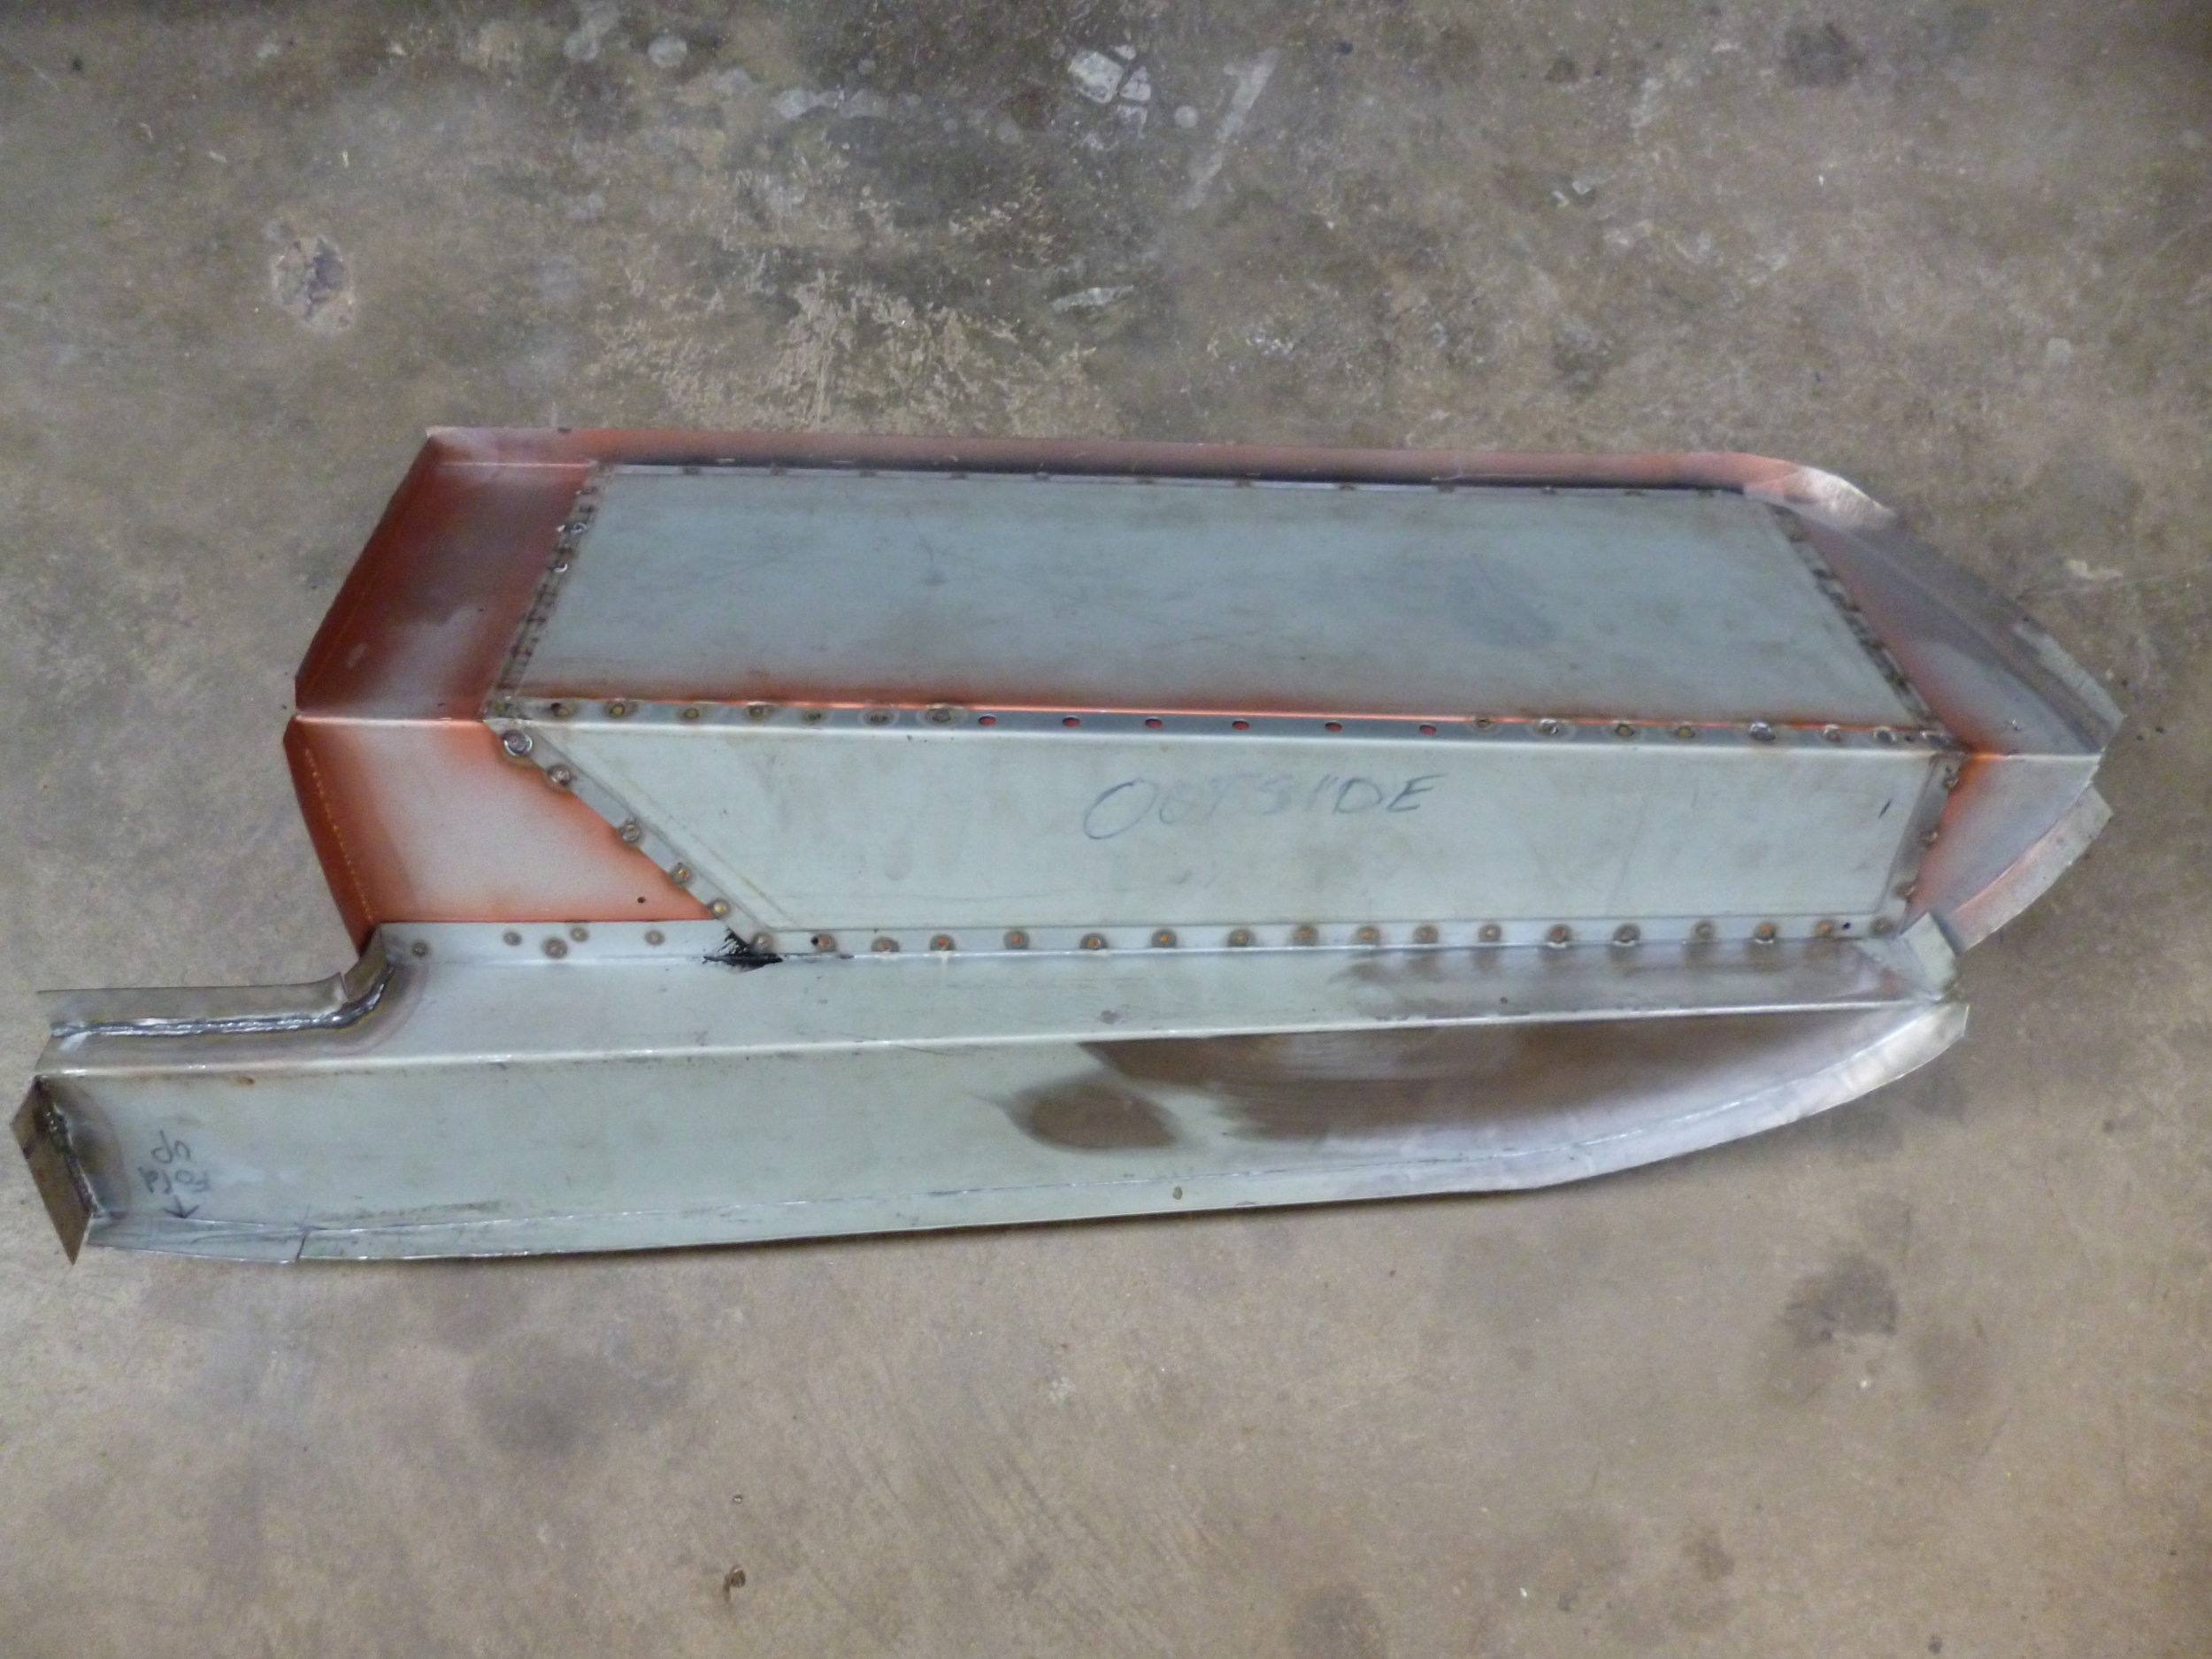 The new inner rear rails, boot wall and boot floor are made from zinc-anneal sheet steel all welded sections have been painted in weld through primer to help reduce corrosion in the future.